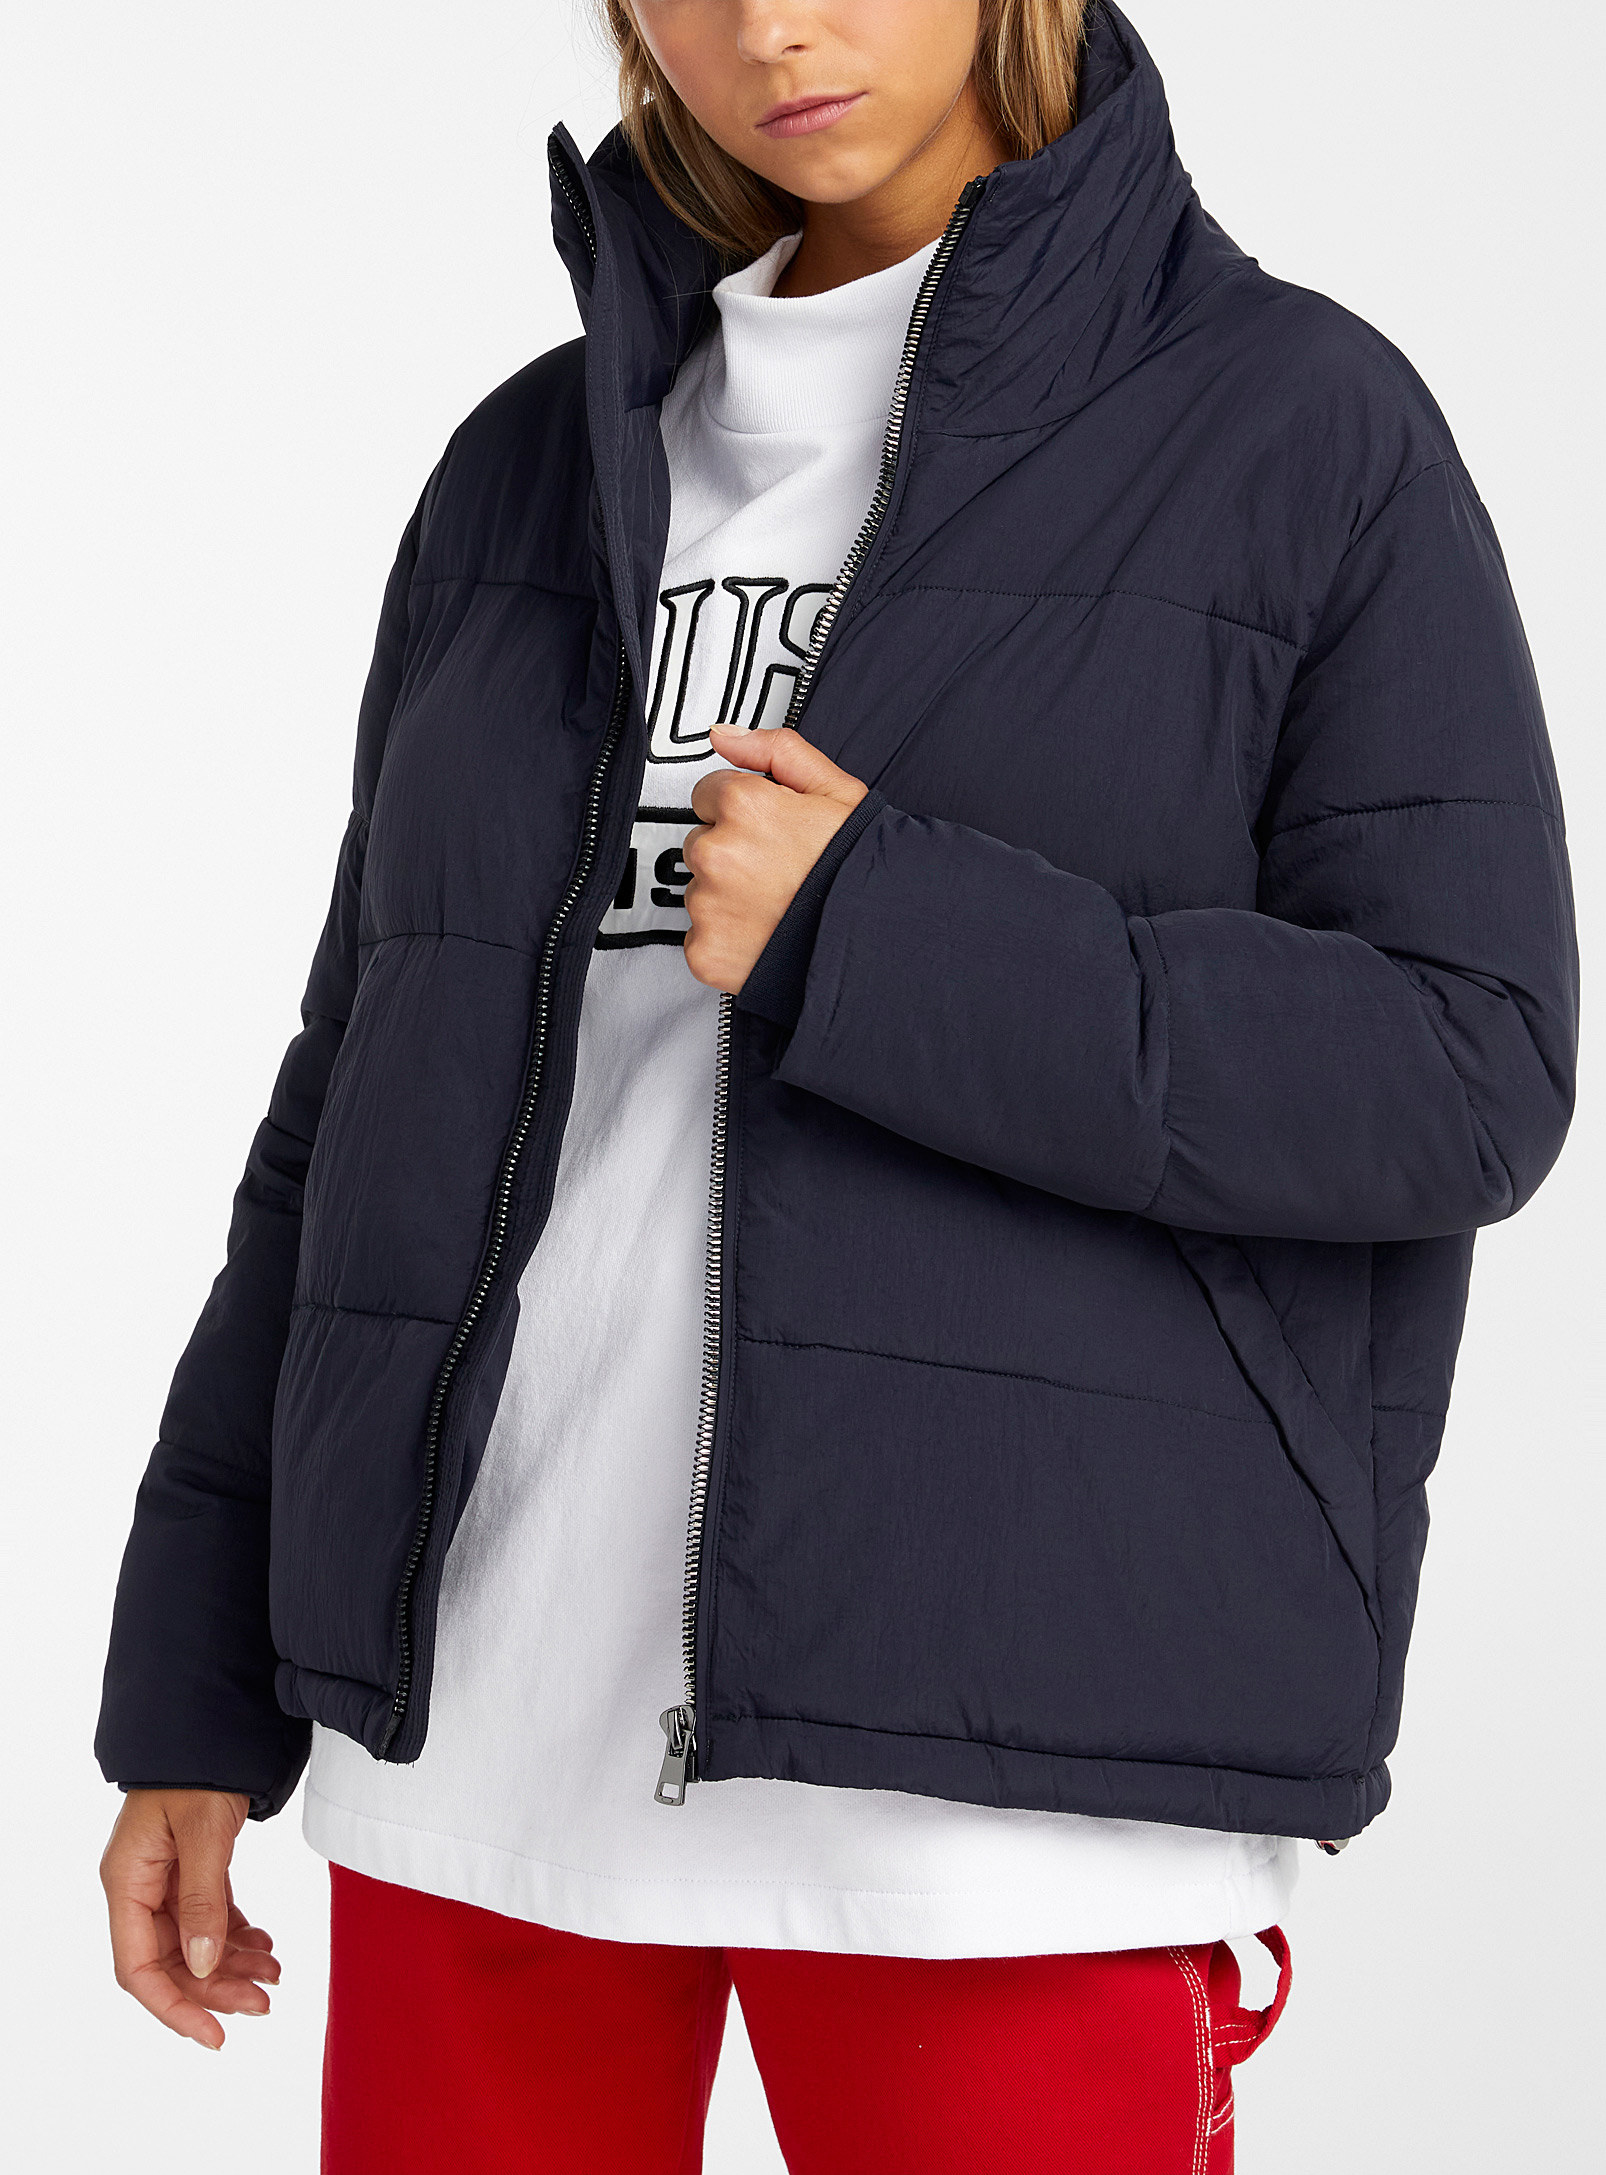 A person wearing a soft puffer jacket over a shirt